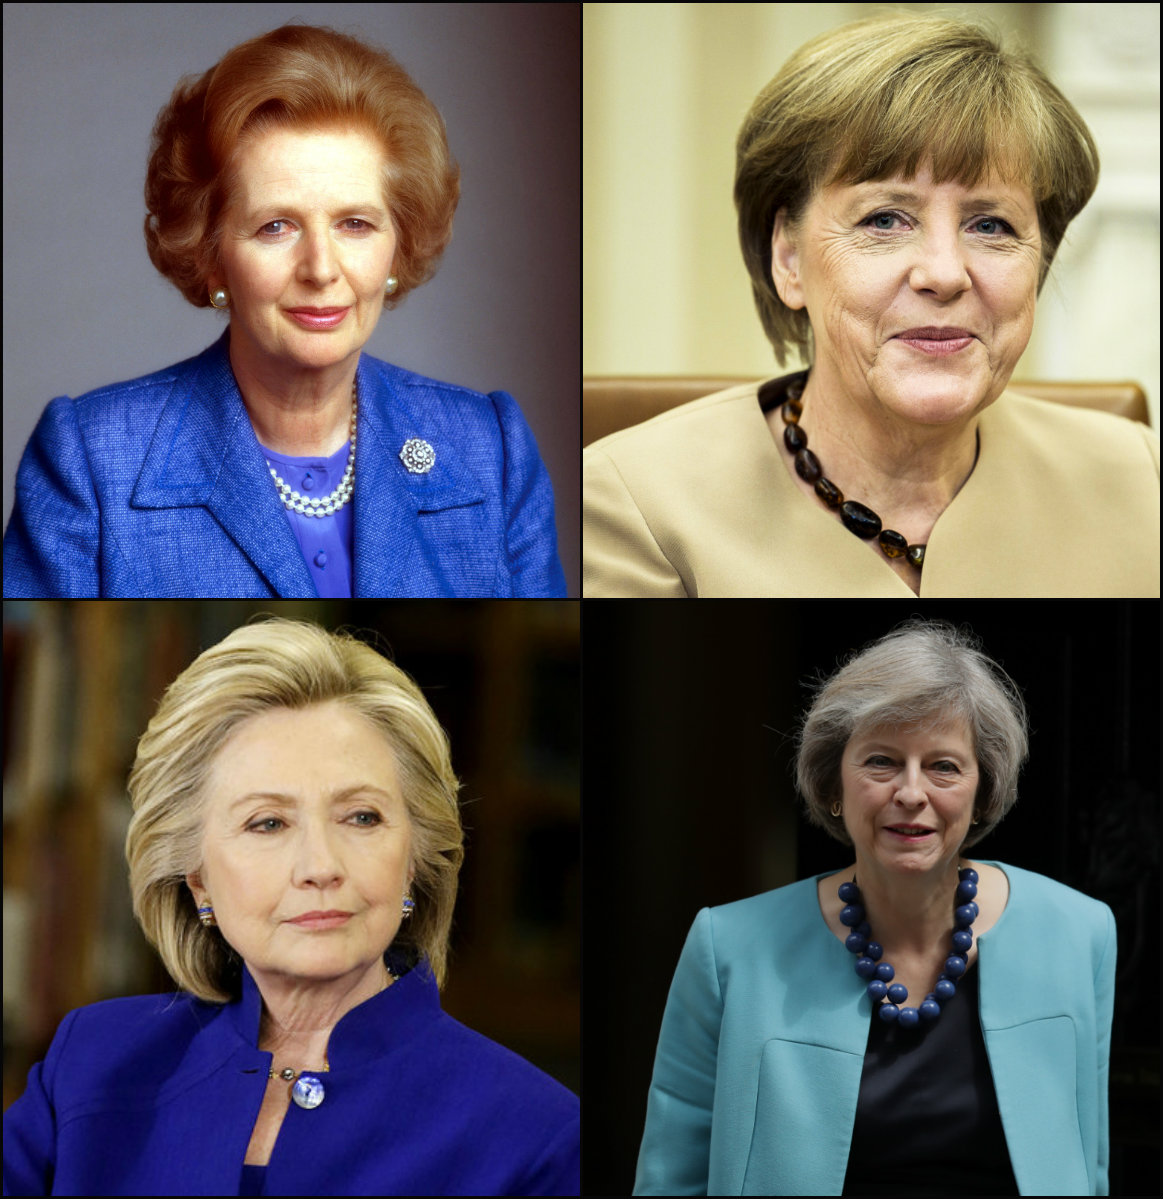 women politicians bob hairstyles for 2017